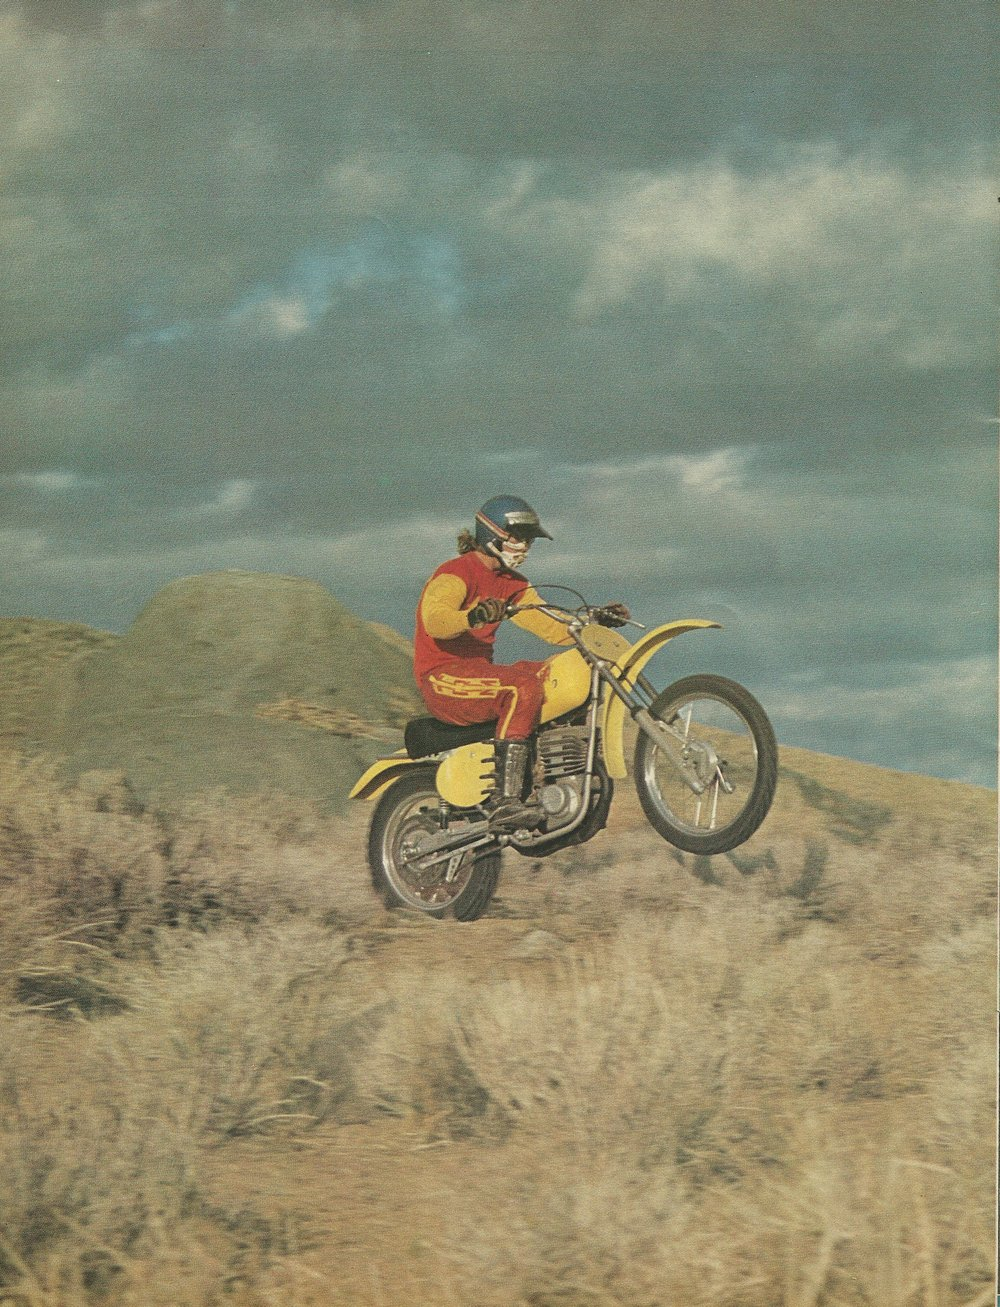 1976 Maico MC400-5 Motocross off road test 3.JPG